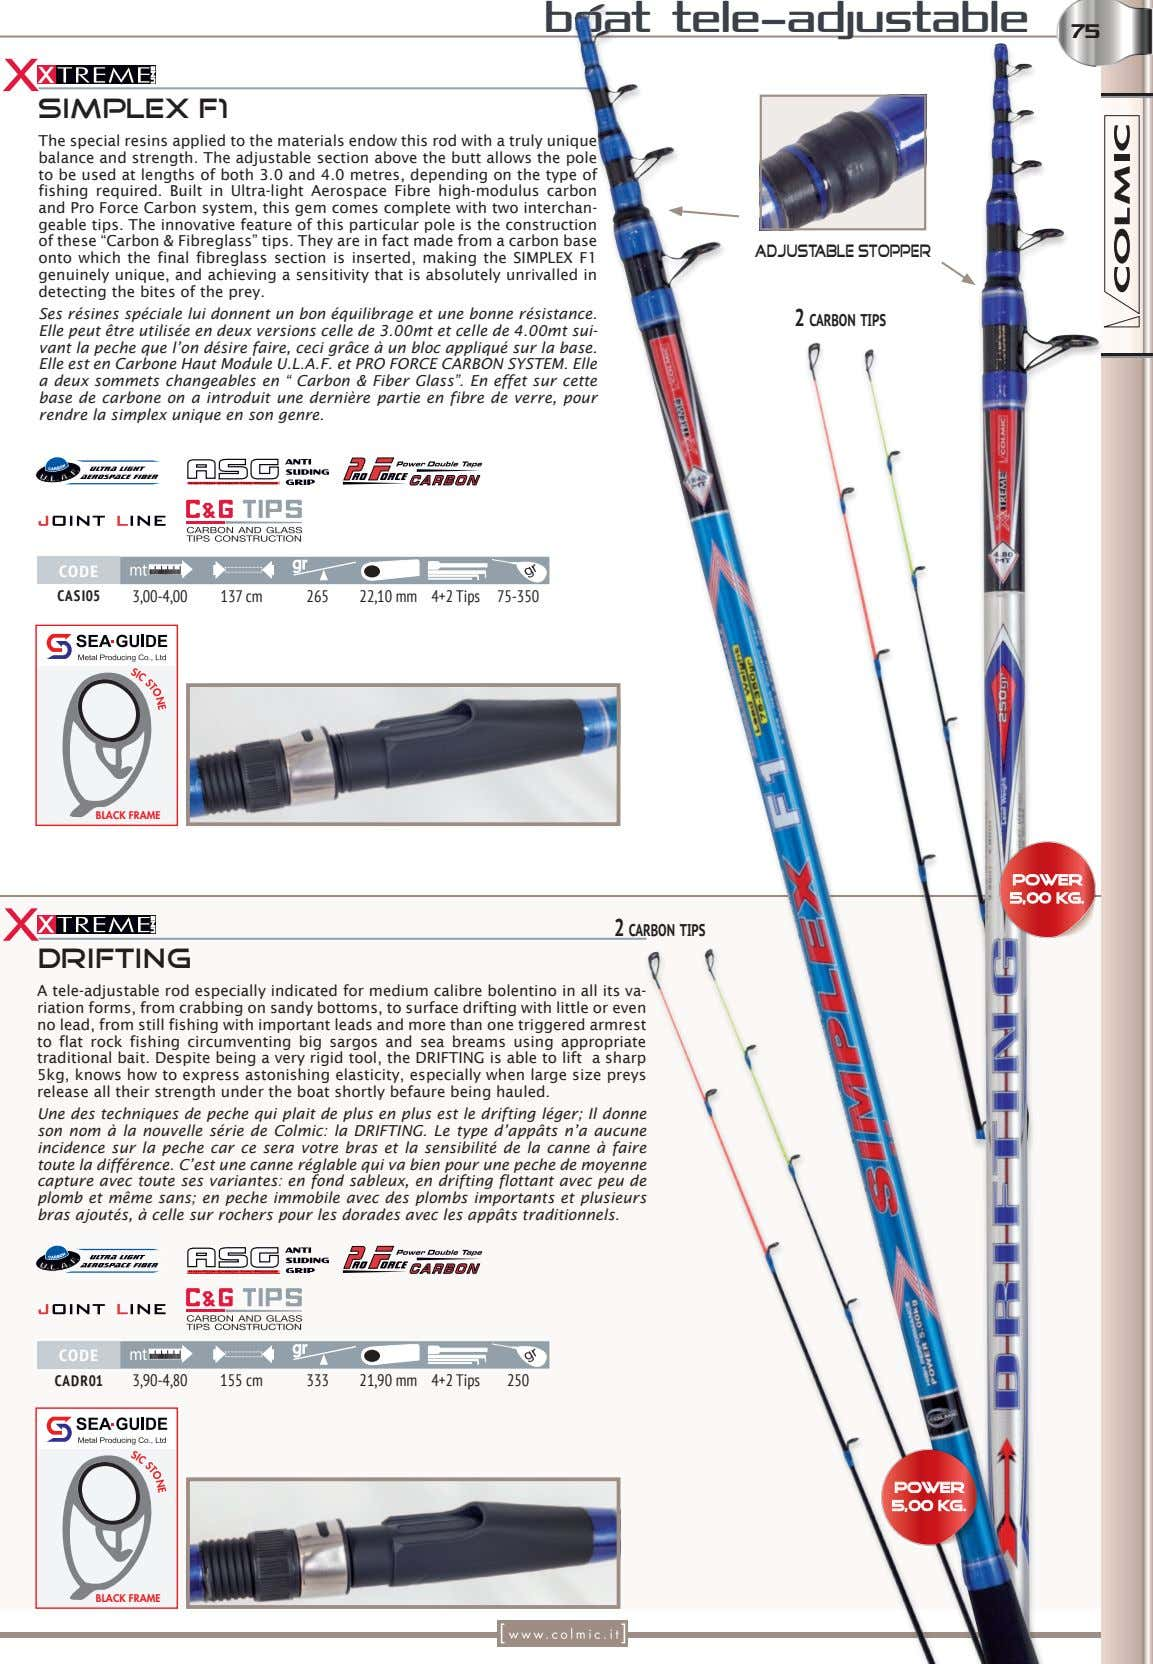 boat tele-adjustable 7575 SIMPLEX F1 The special resins applied to the materials endow this rod